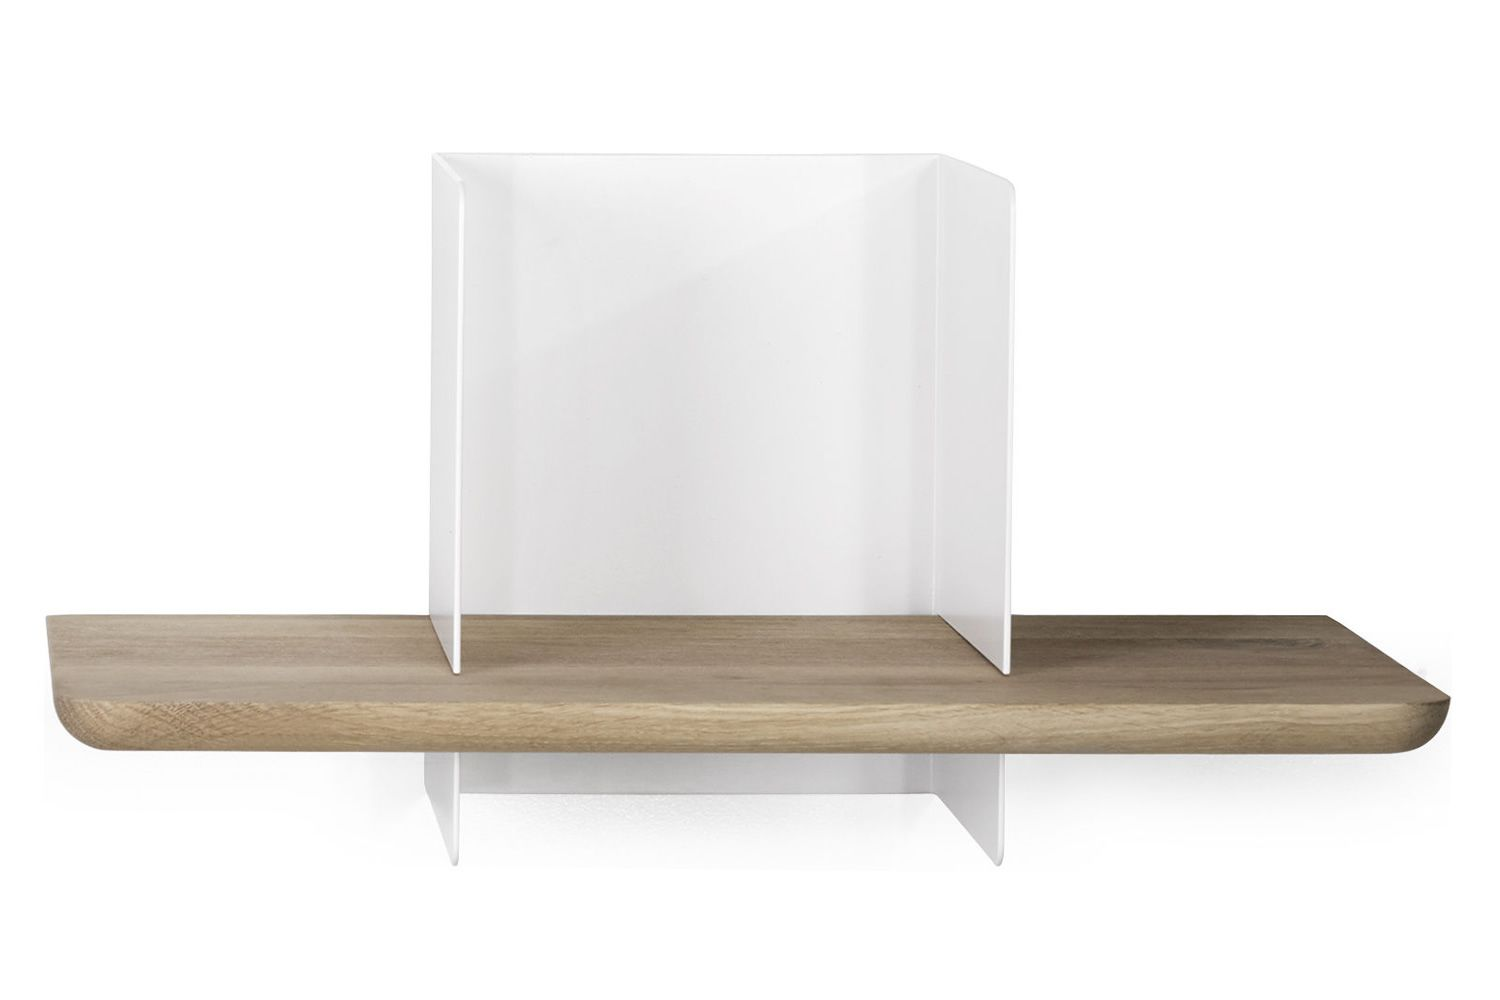 Clip | Shelf made of oak and white lacquered metal (S size)